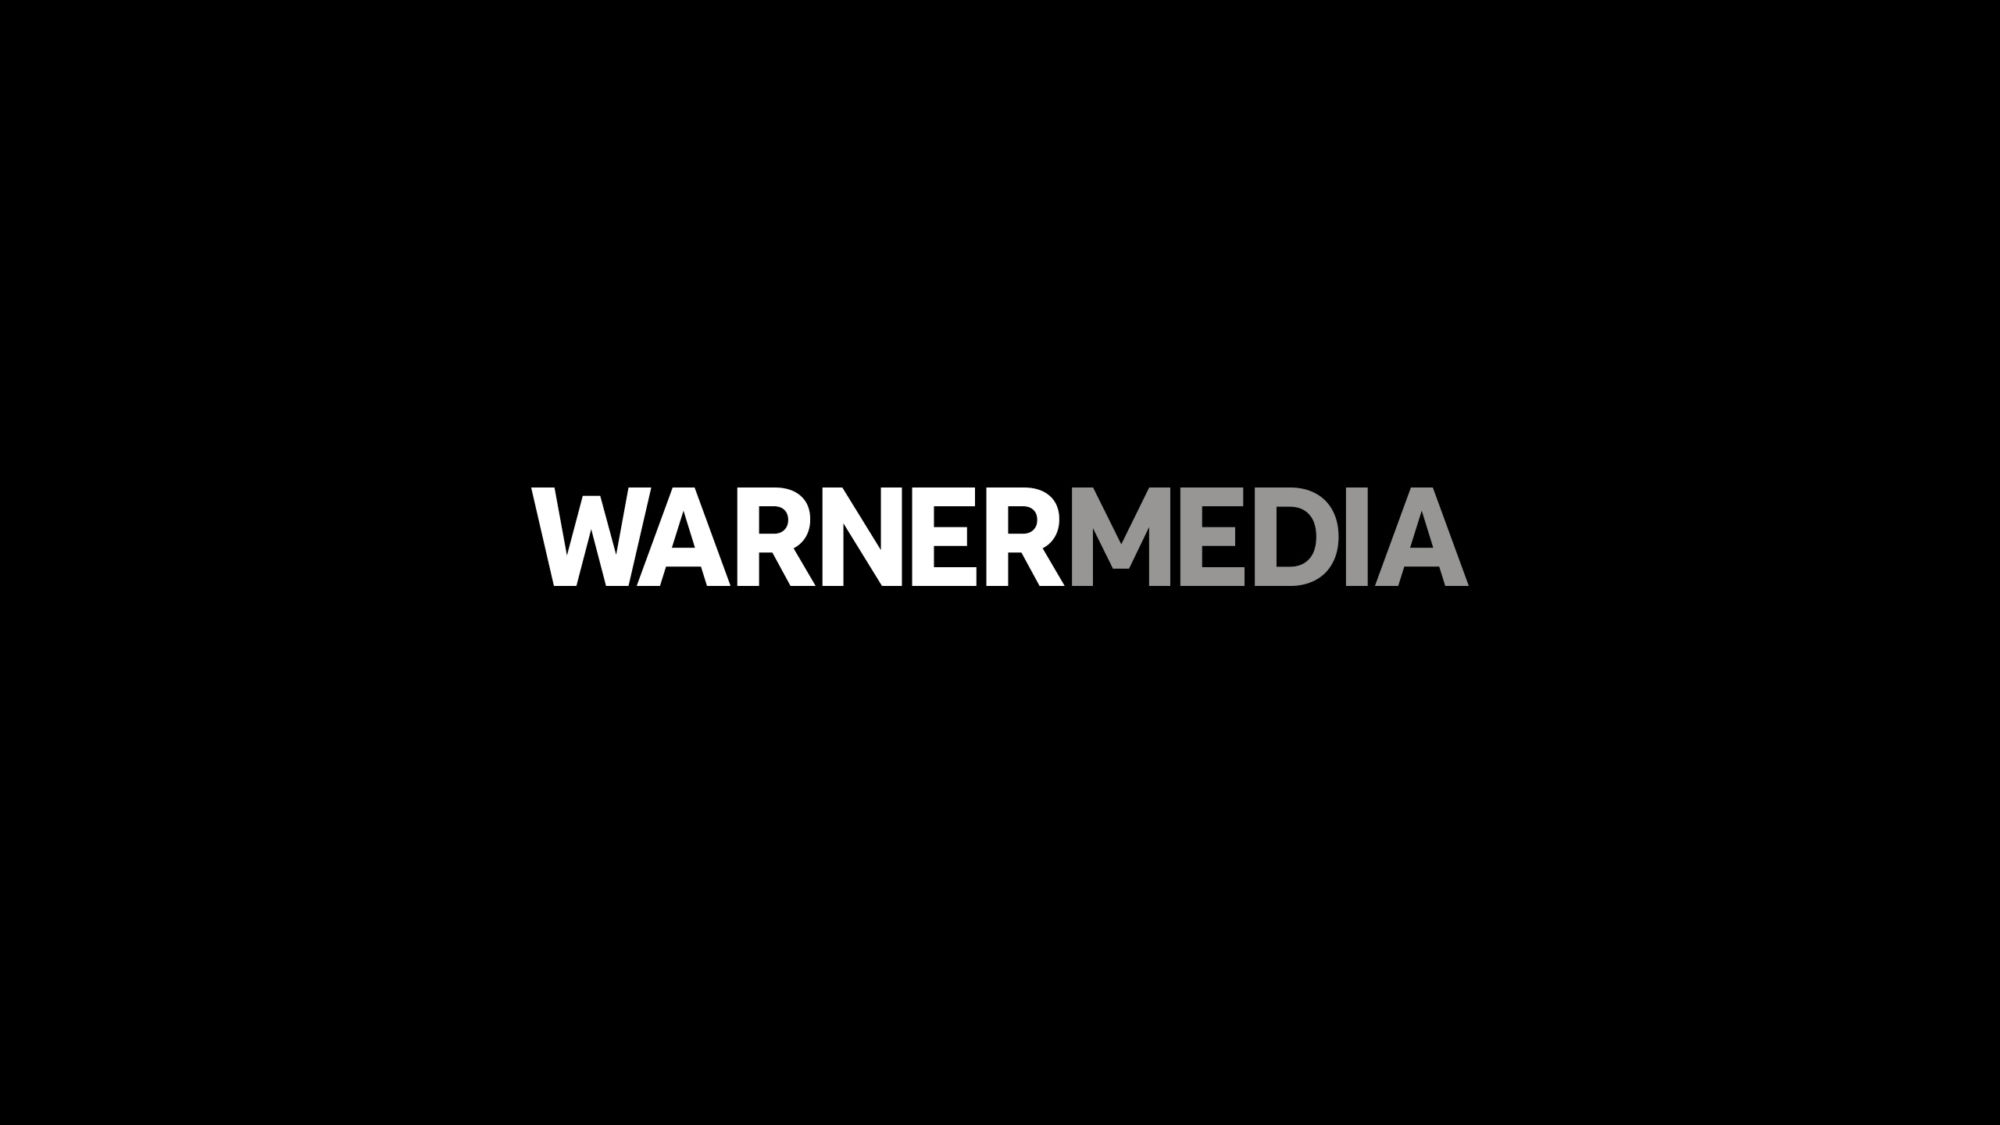 WarnerMedia Joins Disney, Netflix in Stance on Filming in Georgia